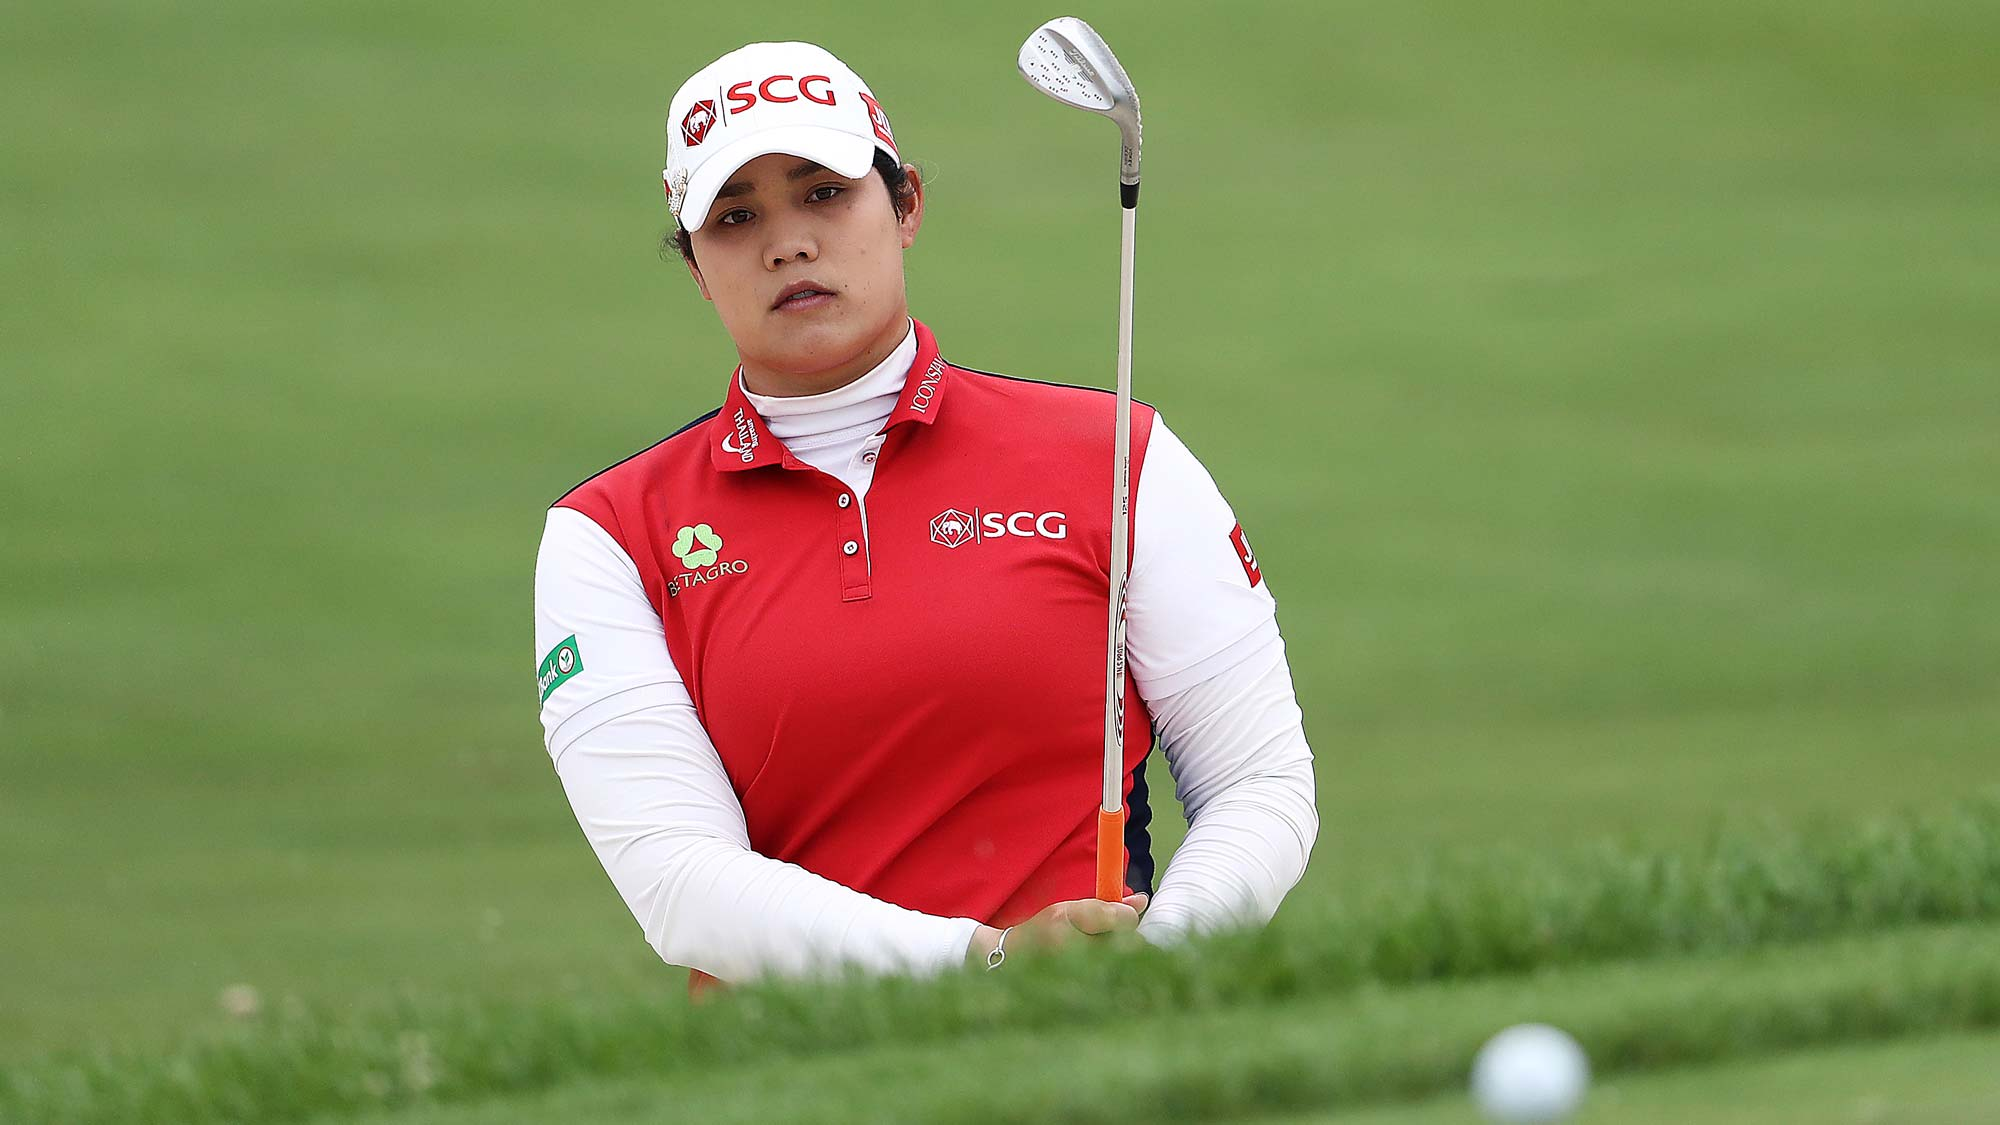 Ariya Jutanugarn of Thailand hits her third shot on the 1st hole from a bunker during the third round of the KPMG Women's PGA Championship